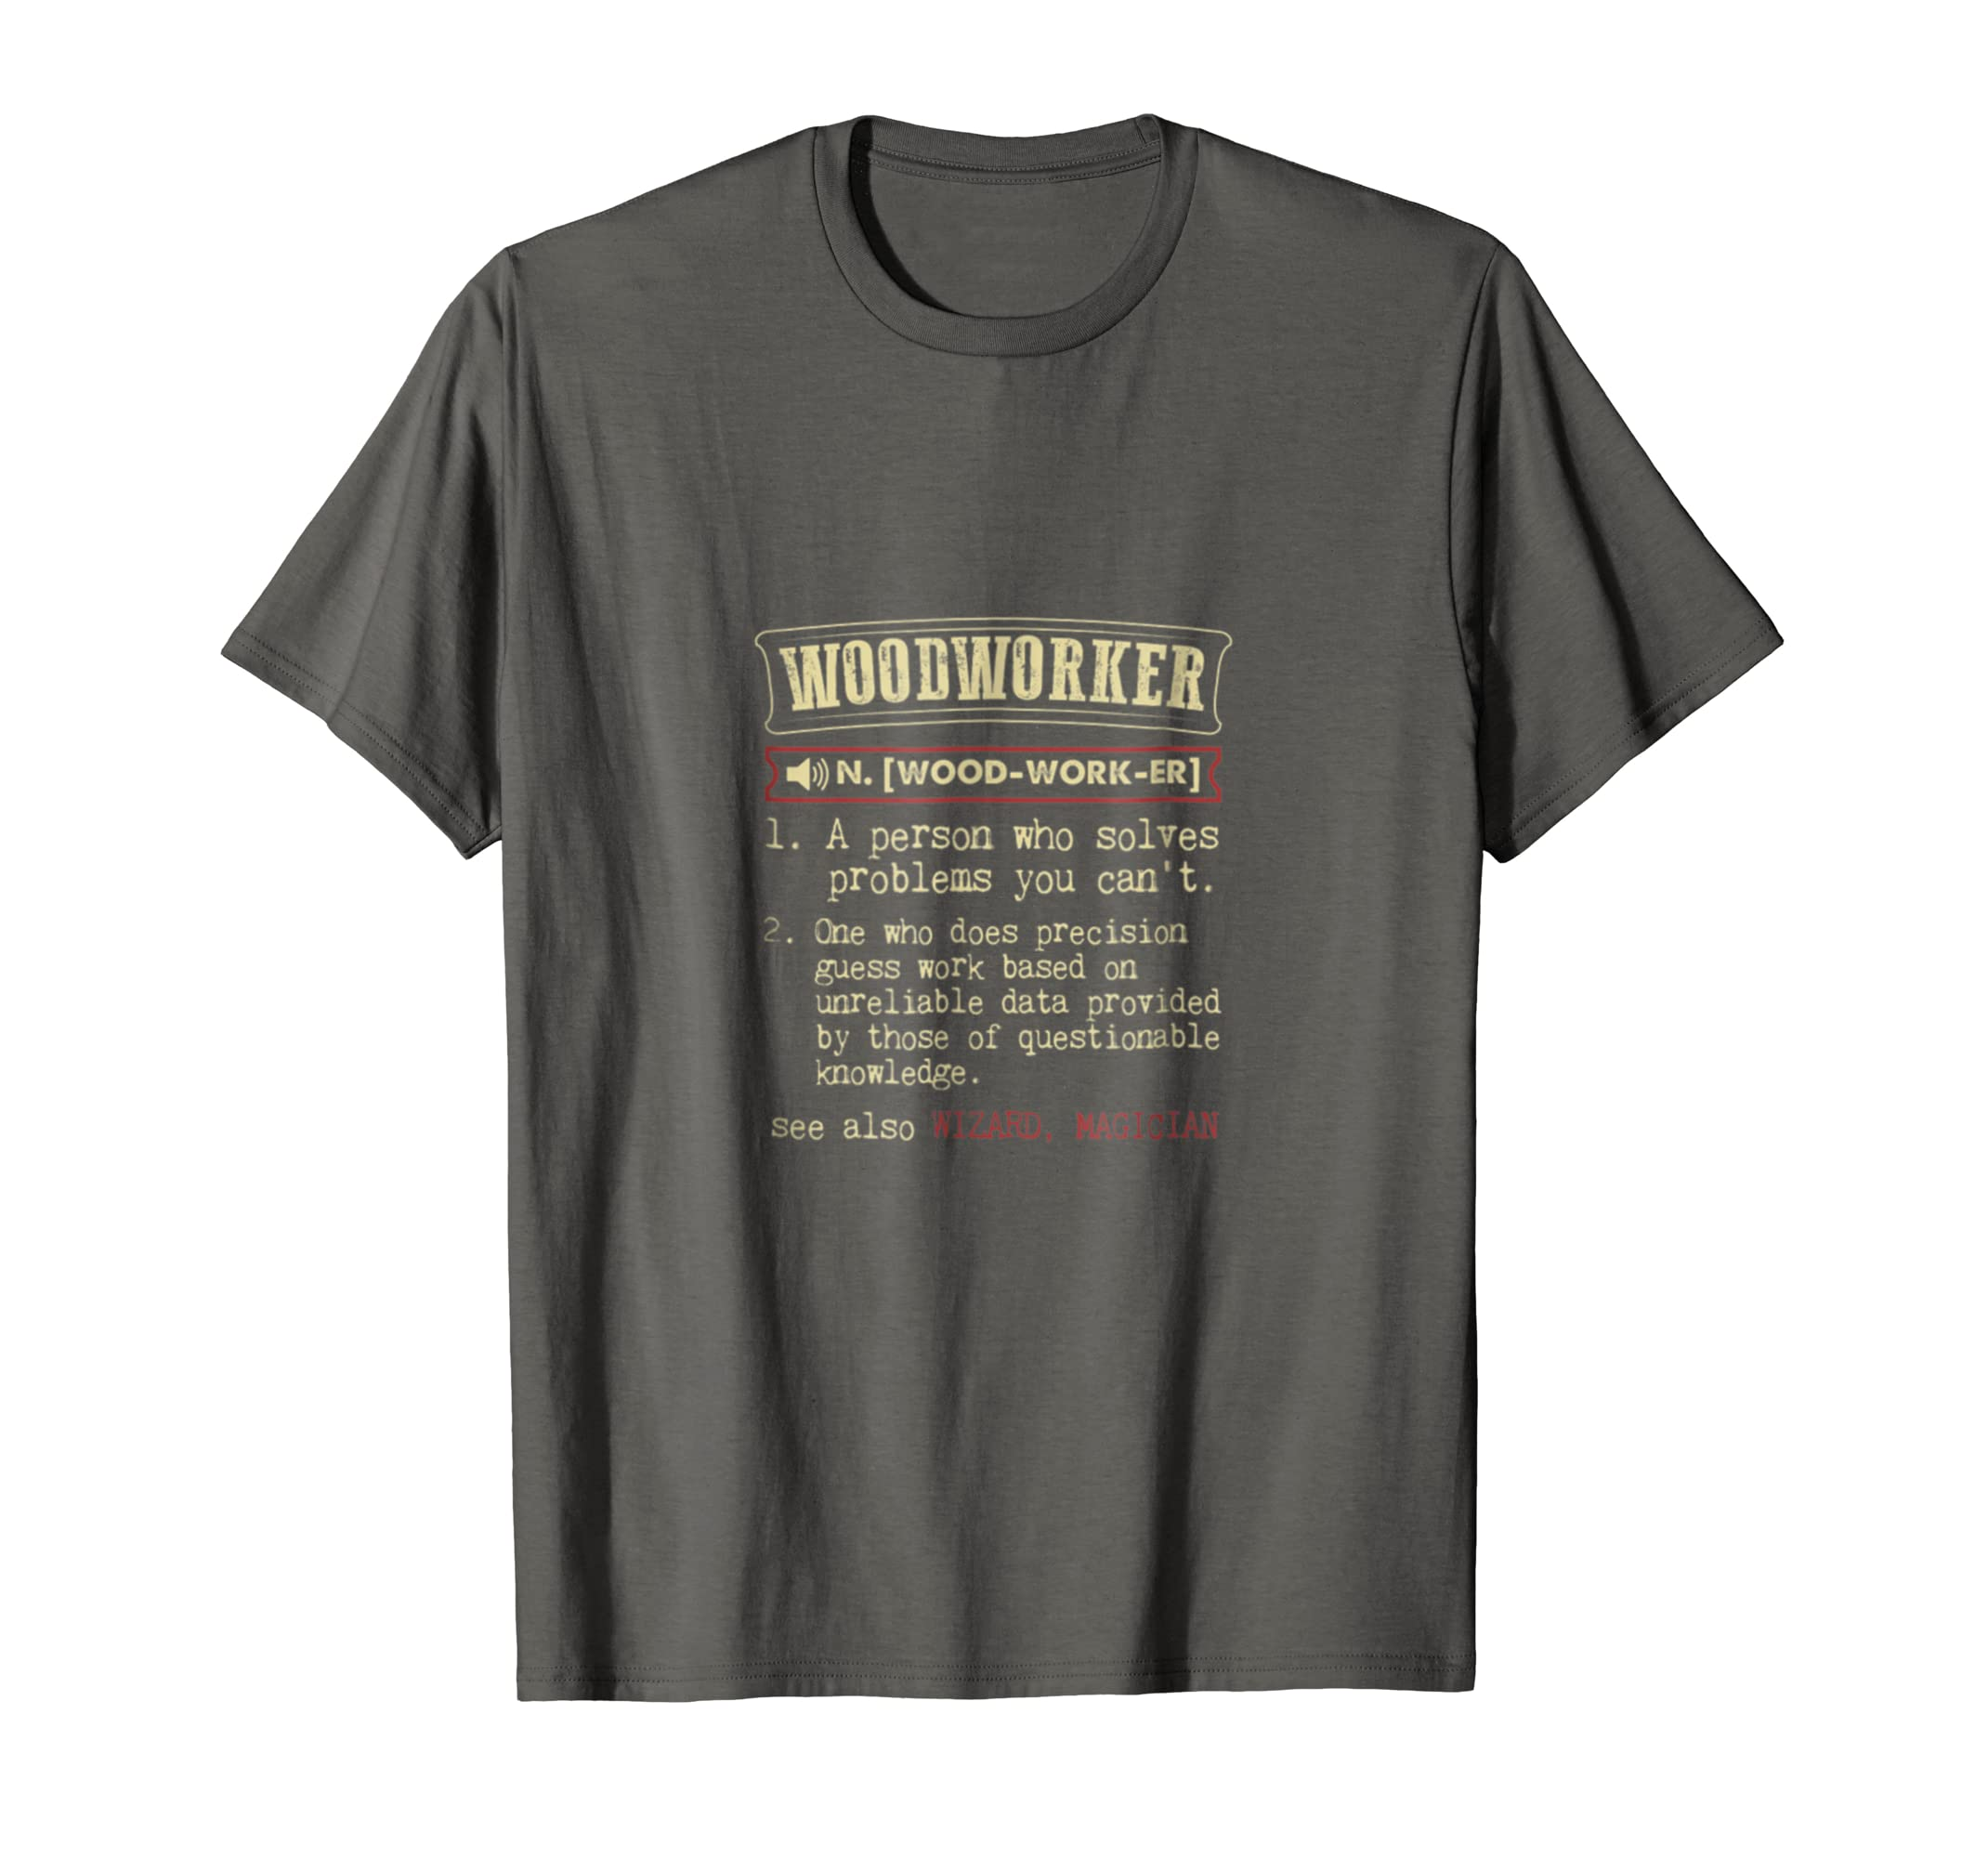 4973741ac3de Amazon.com  Woodworker - Funny Woodworking T-shirt  Clothing